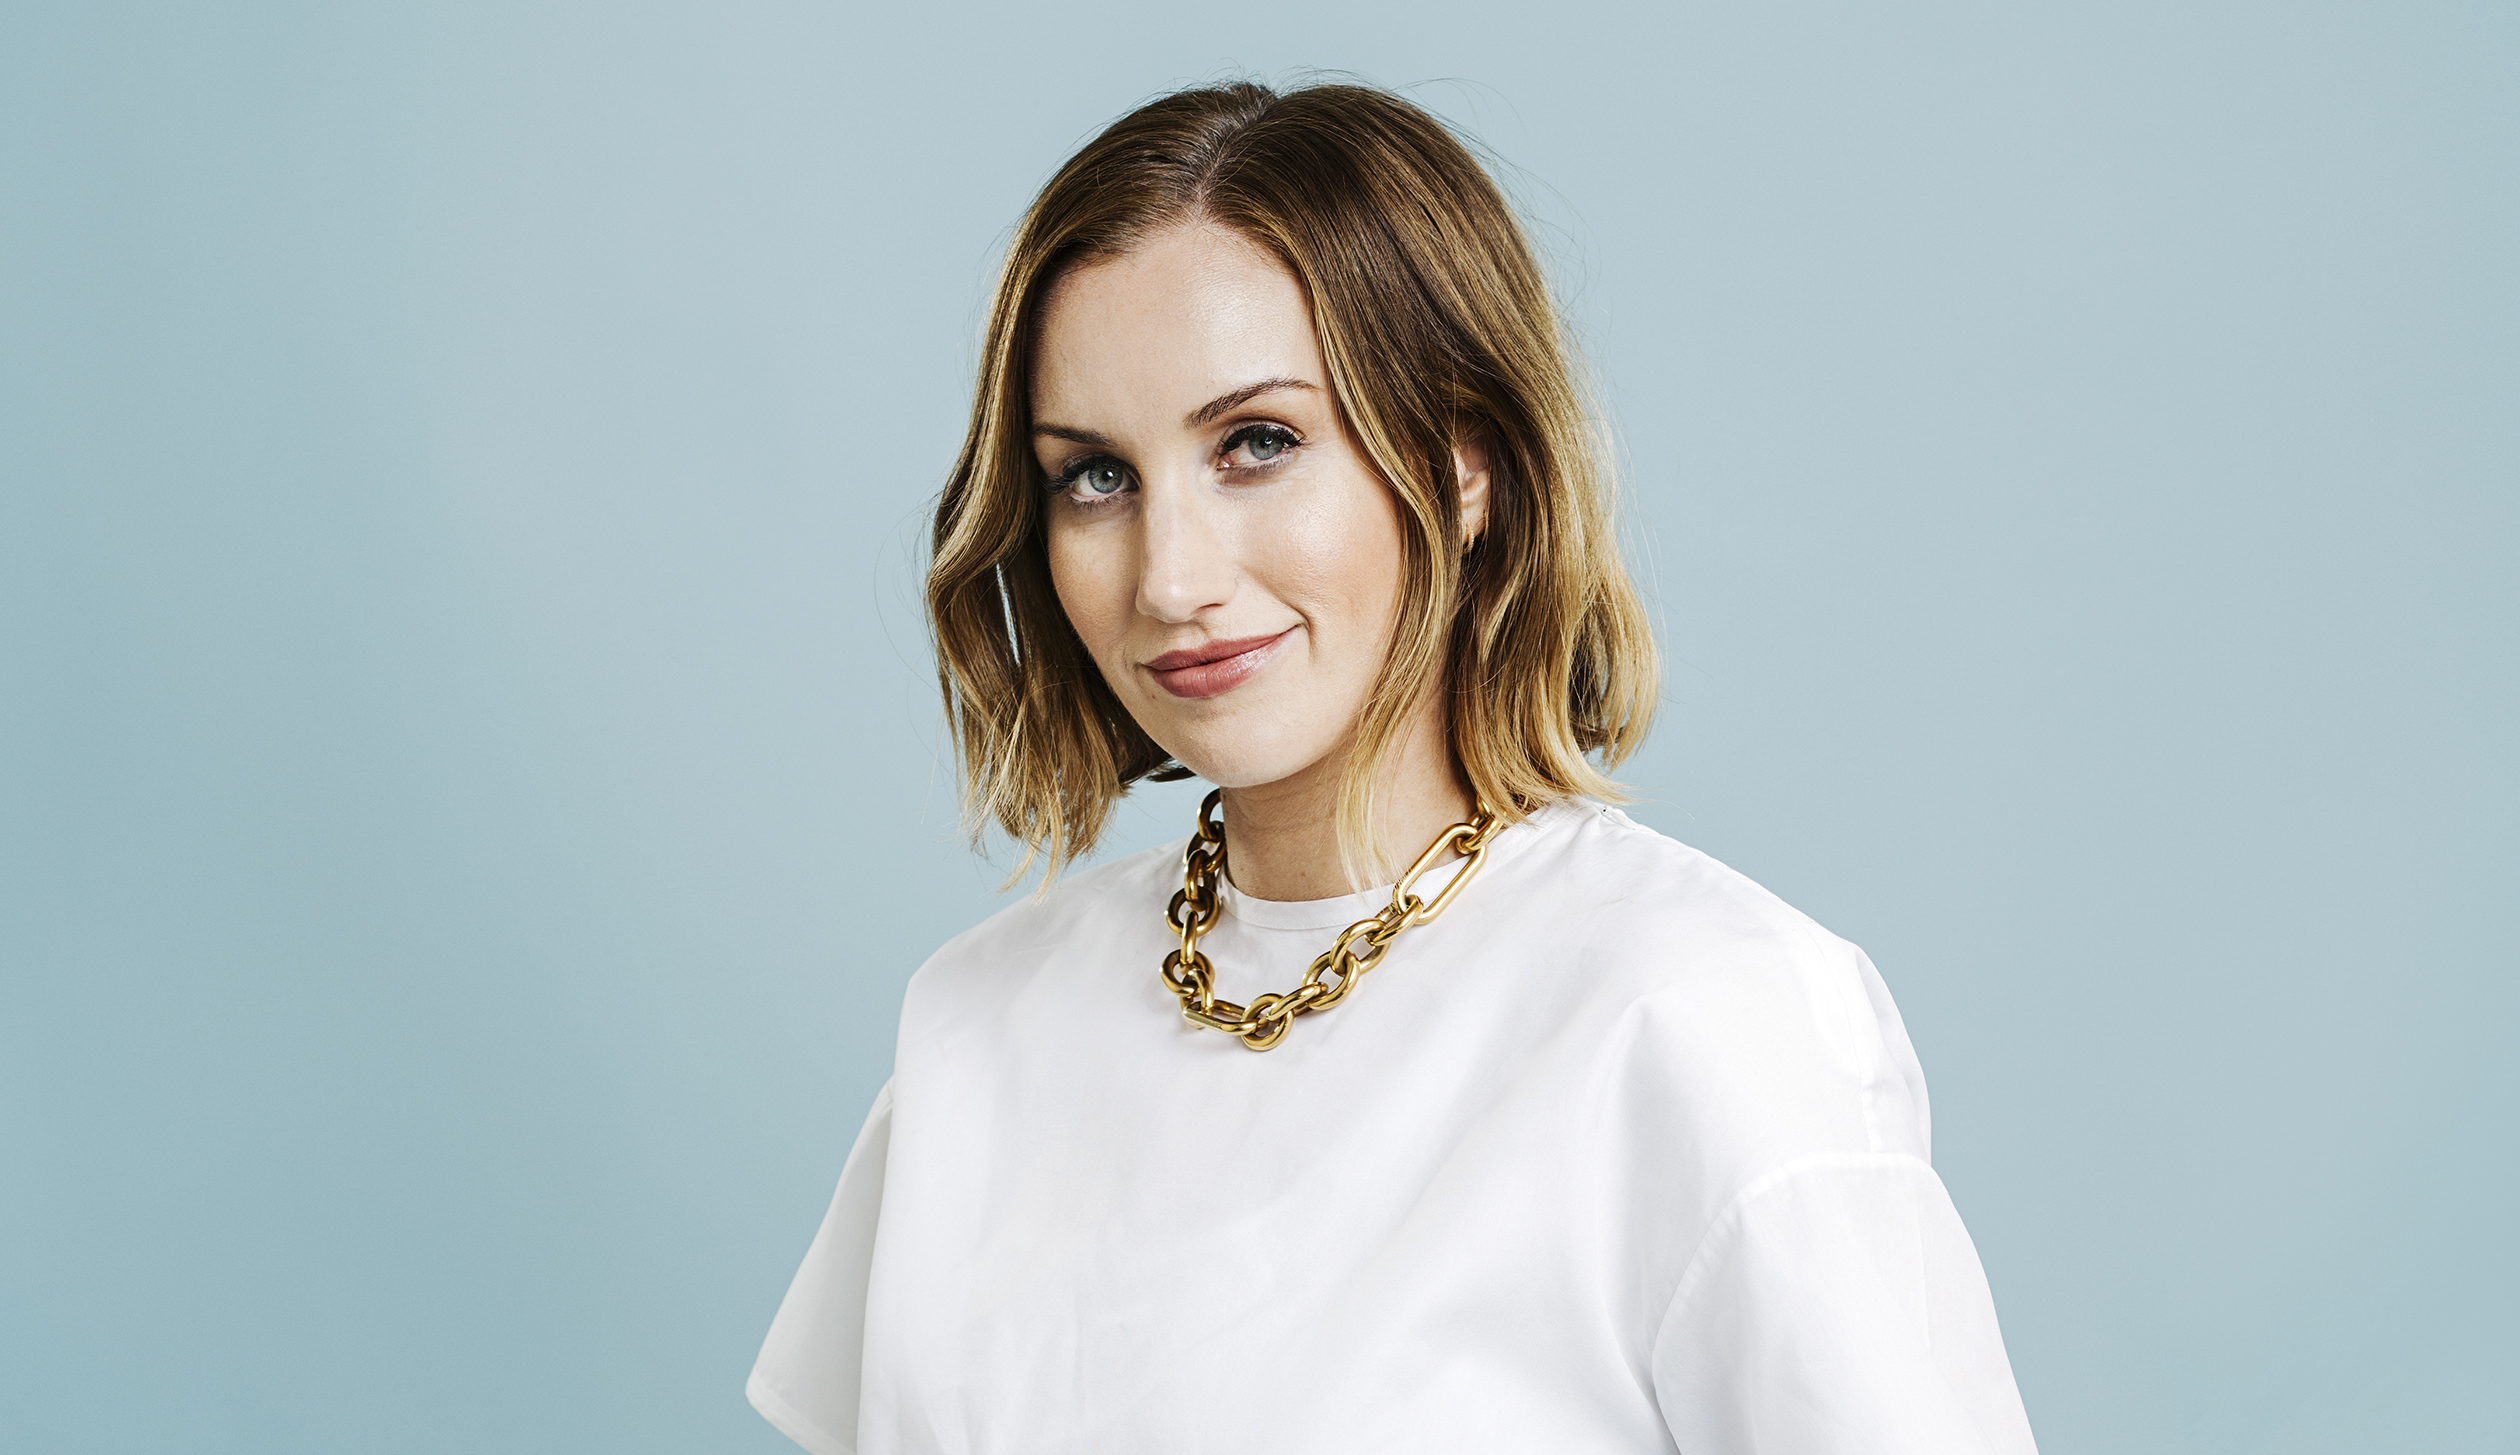 40Under40 profile Katherine Power